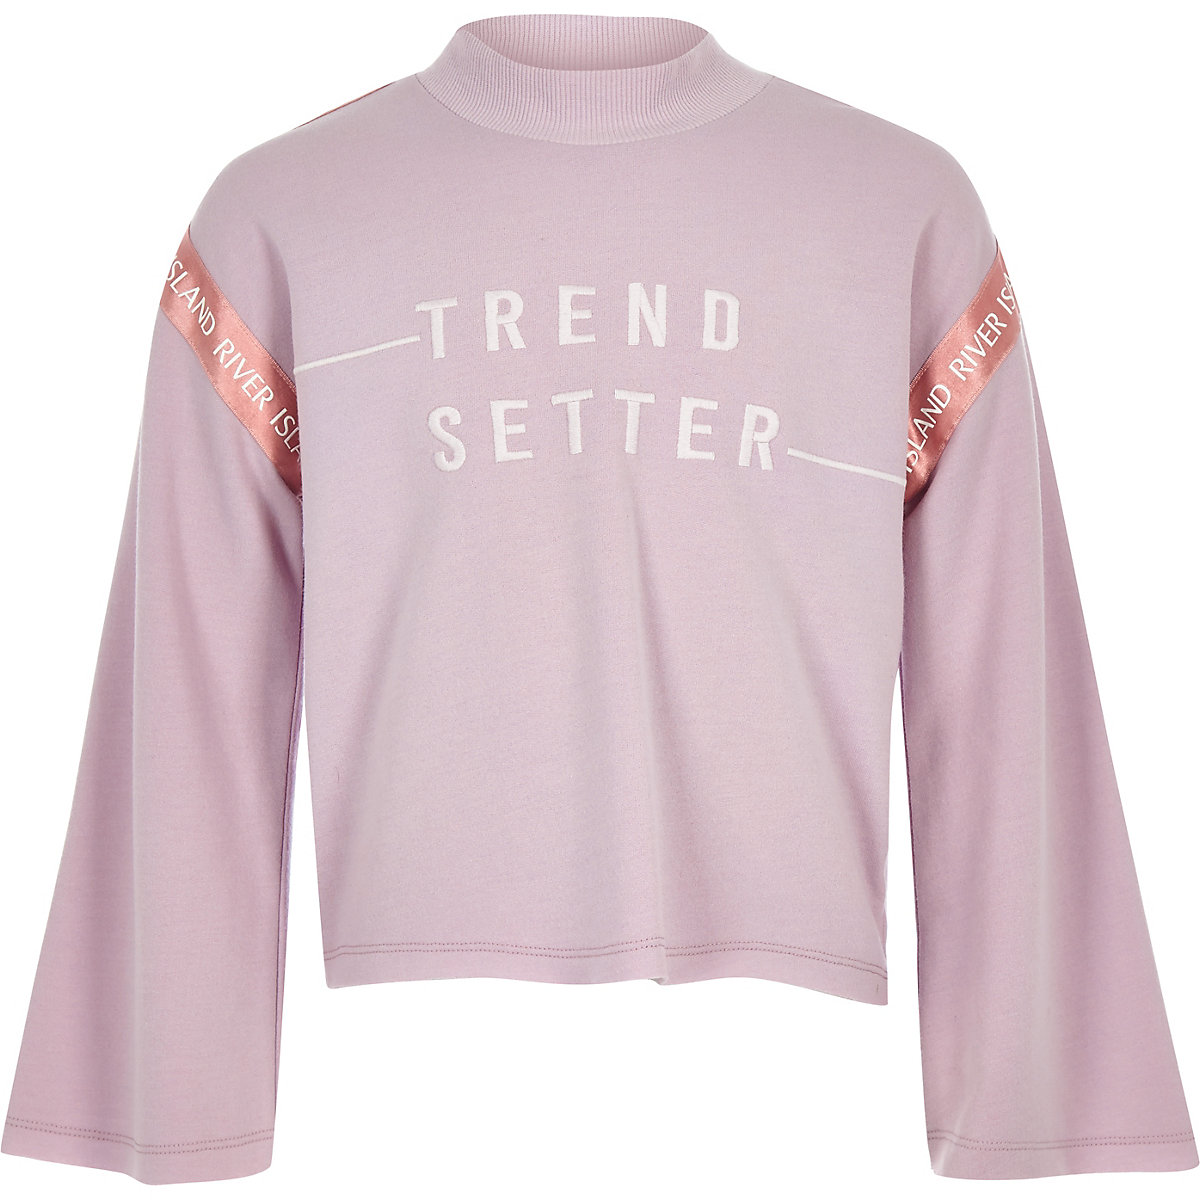 Girls purple 'Trend setter' sweatshirt